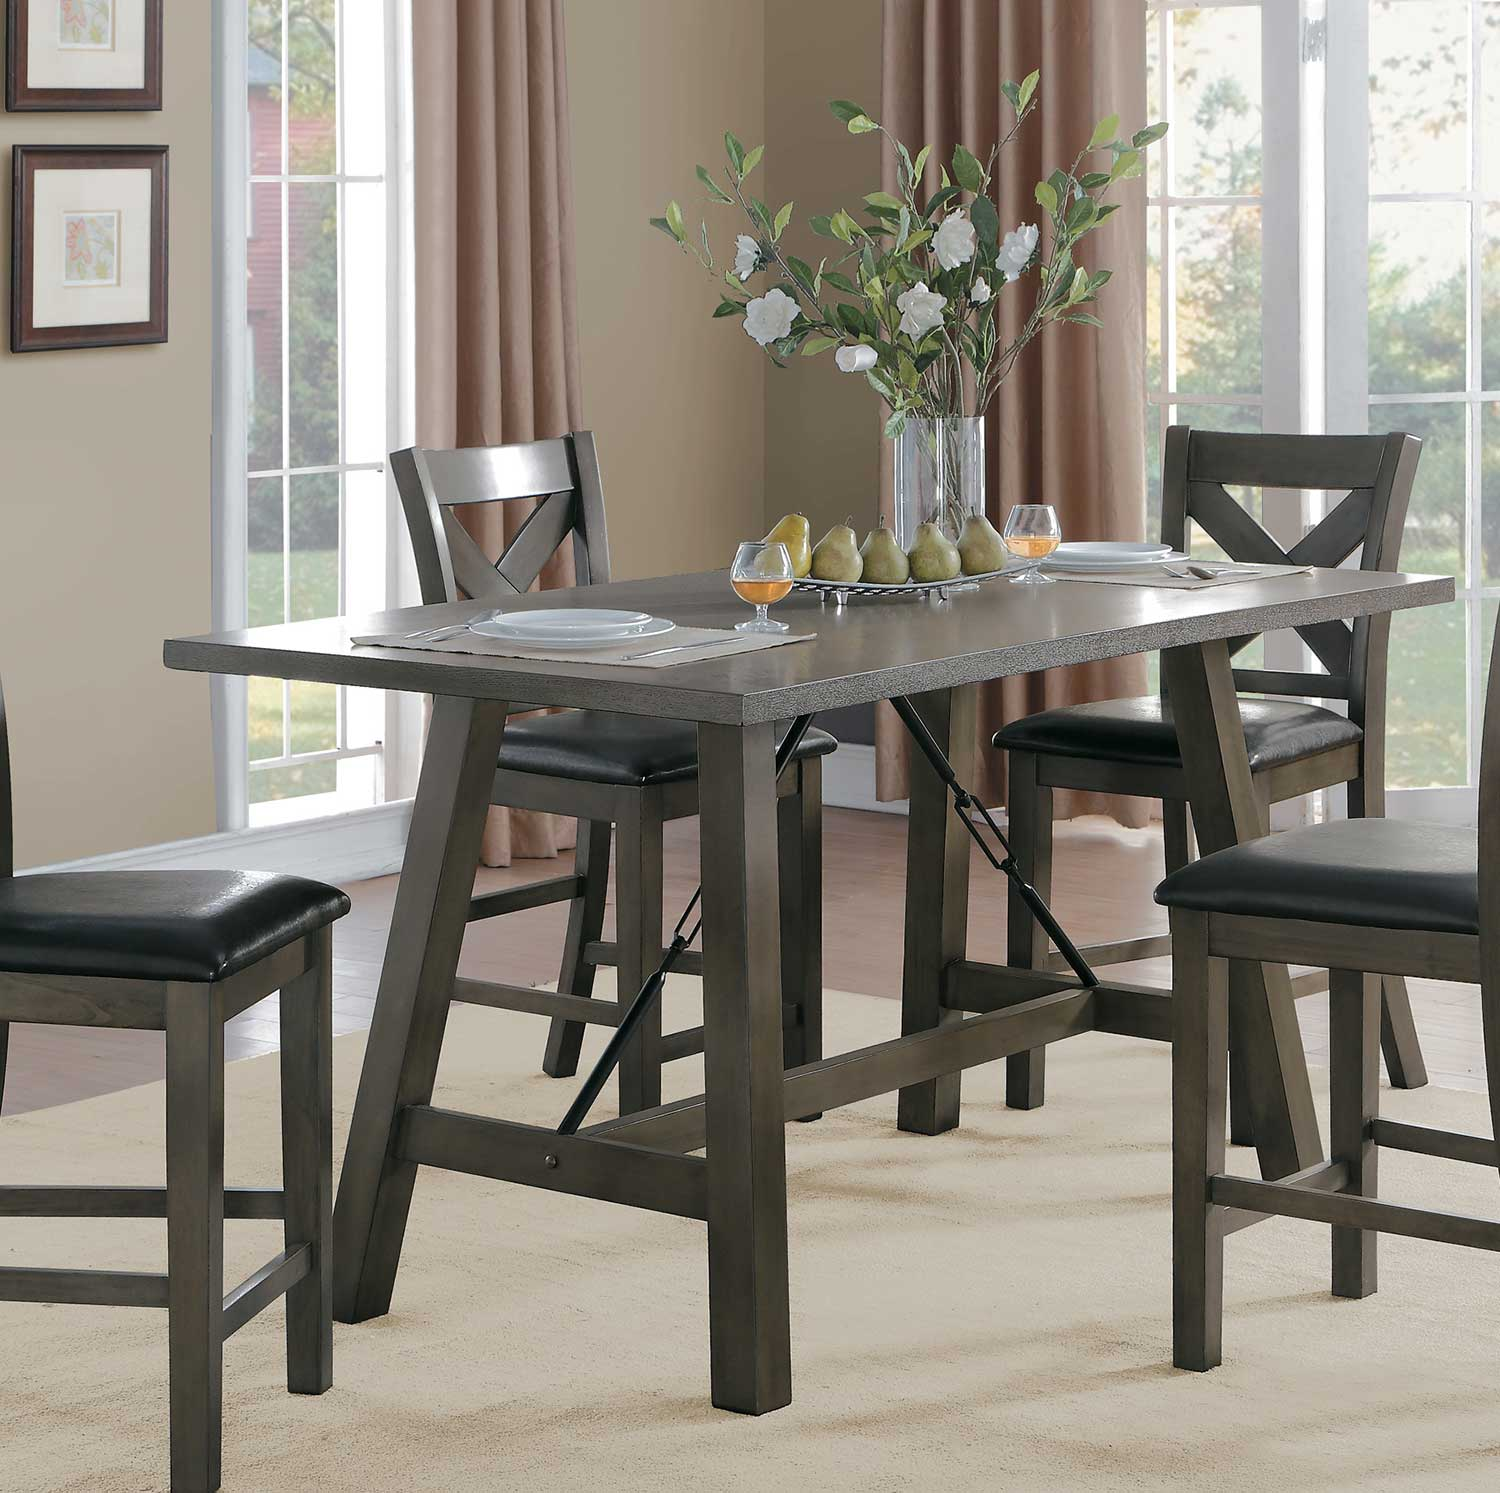 Homelegance Seaford Rectangular Counter Height Dining Table - Gray tone